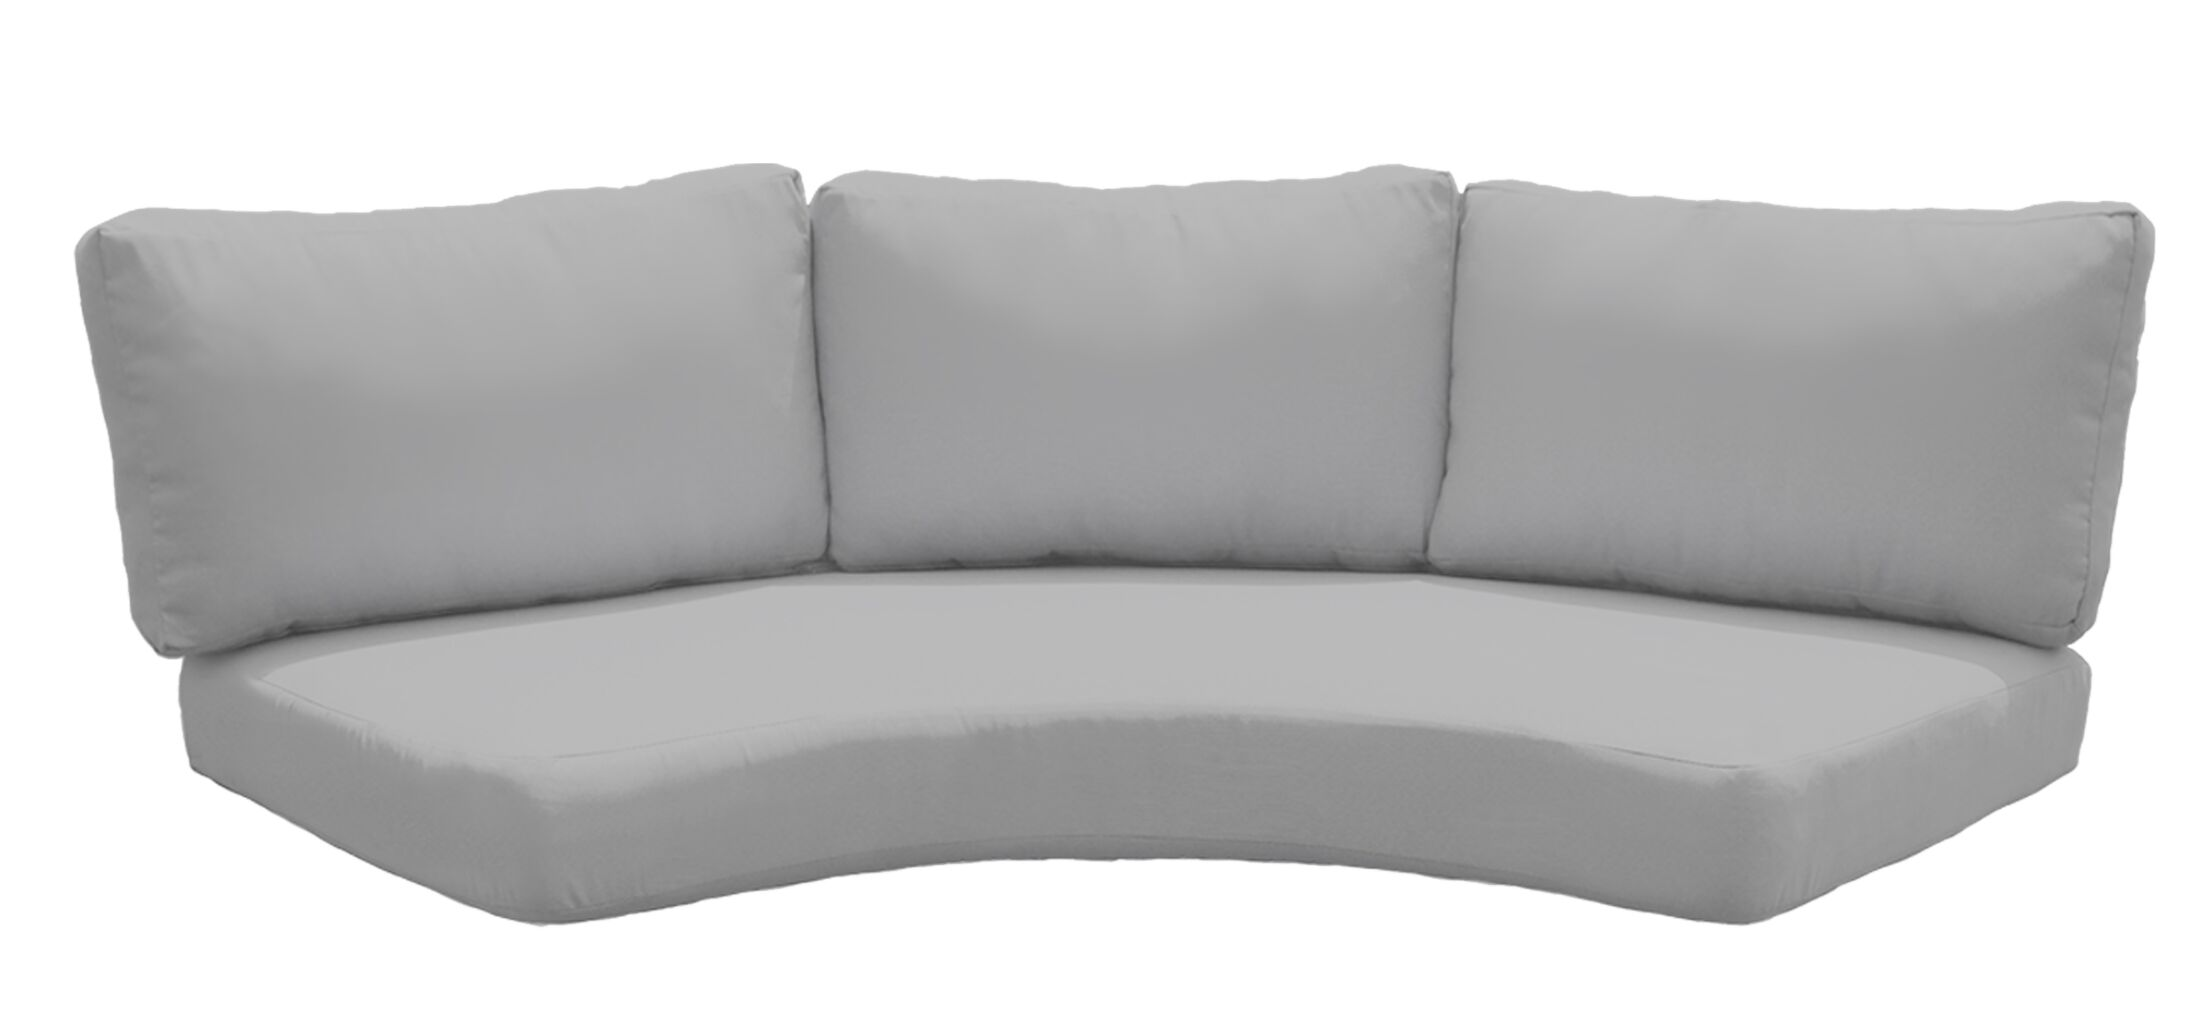 Outdoor Replacement Cushion Set Fabric: Gray